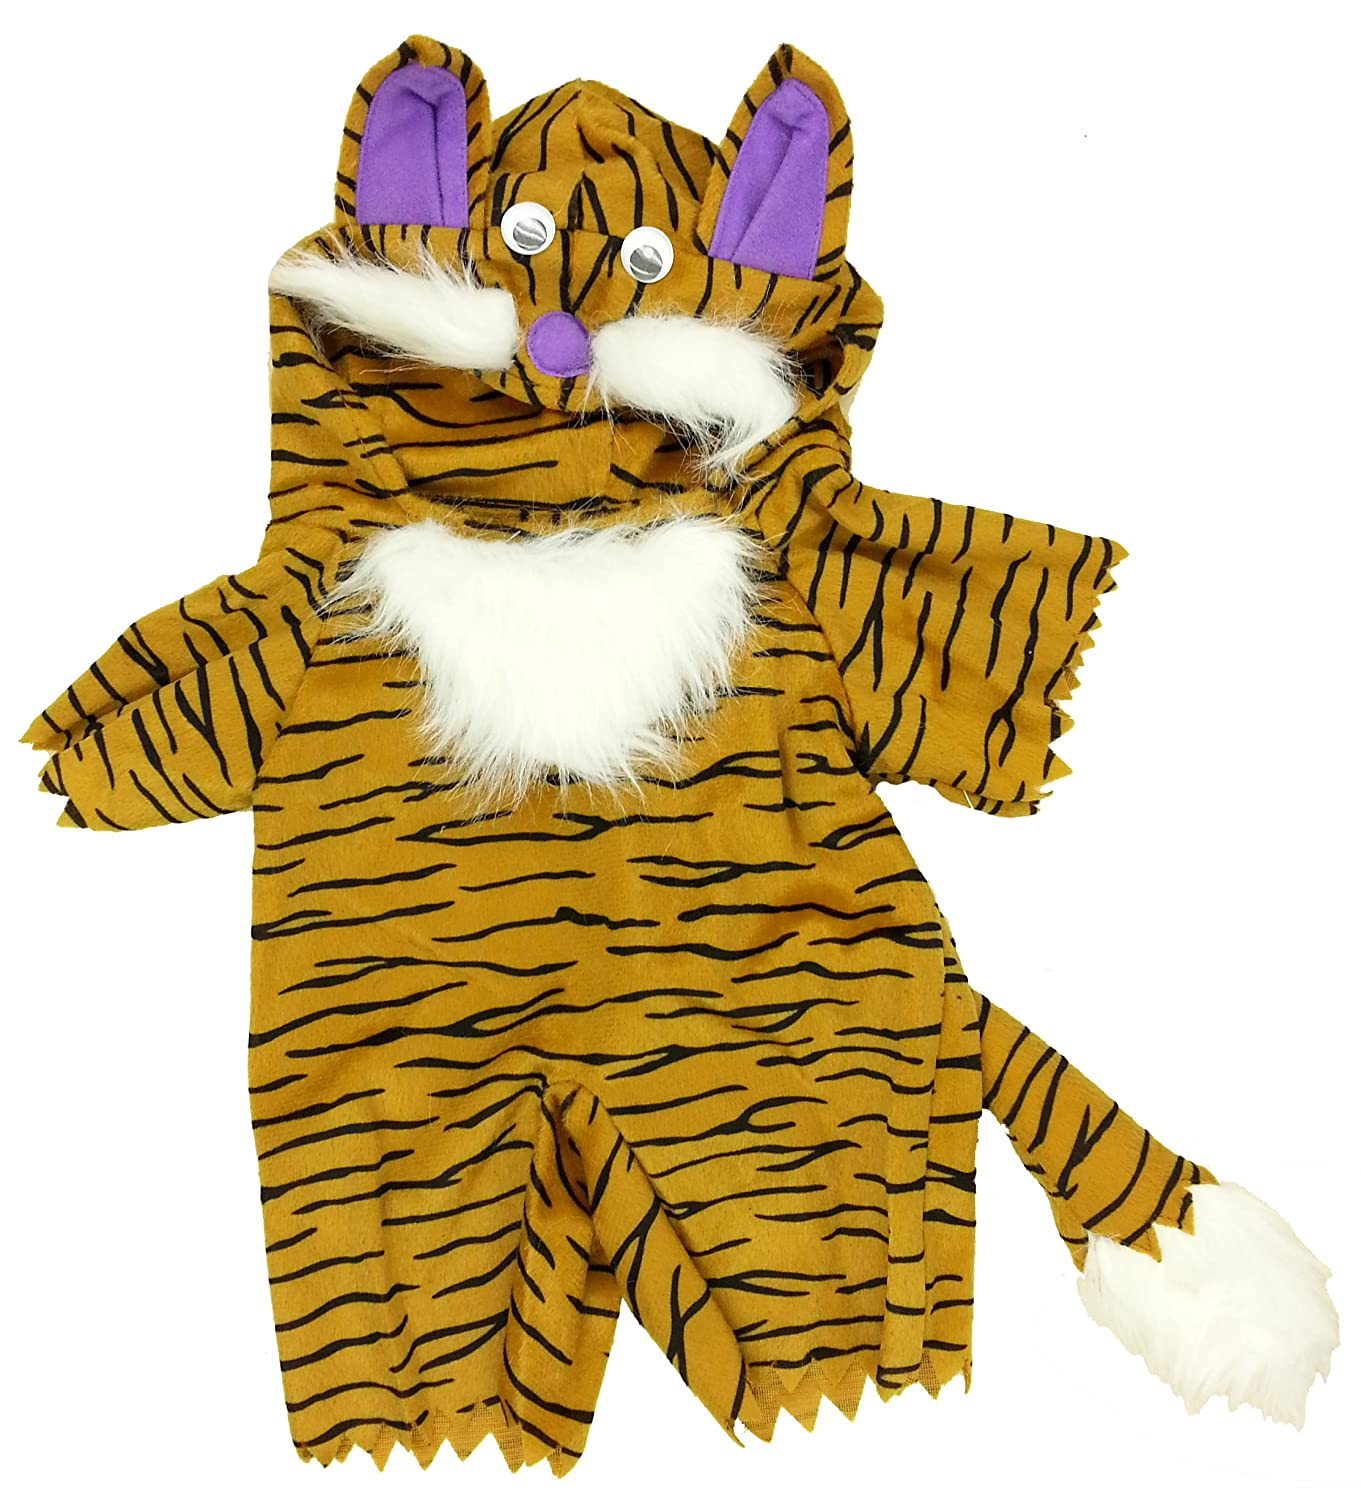 Vermont Teddy Bears and Make Your Own Stuffems Toy Shop Kitty Kat Outfit Teddy Bear Clothes Outfit Fits Most 14-18 Build-a-Bear